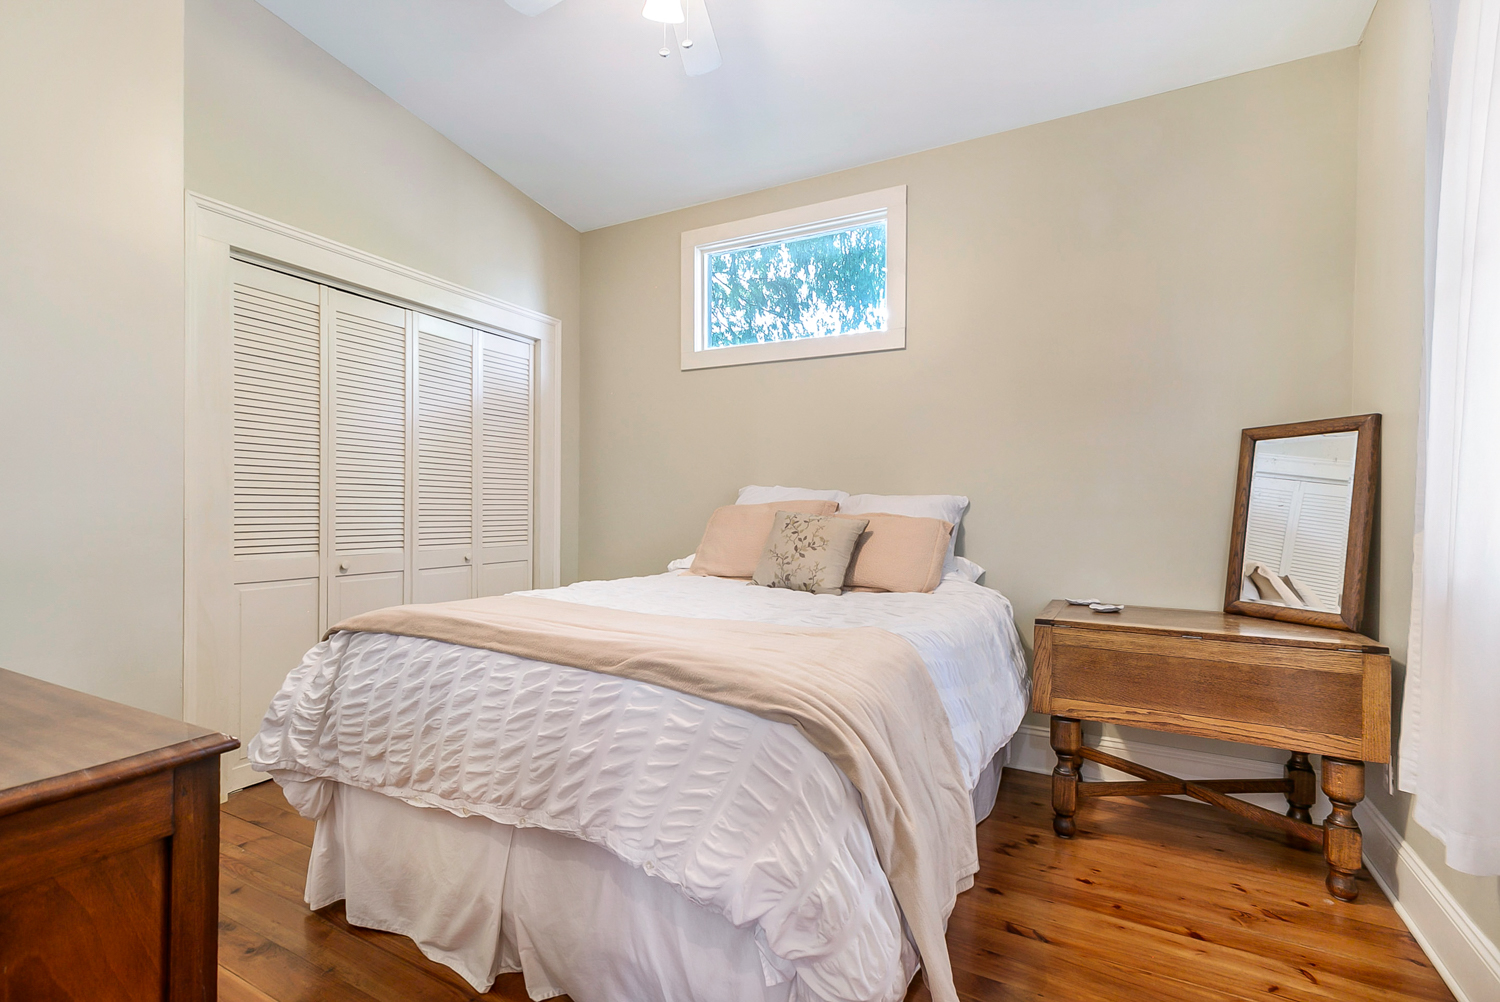 Uptown, House, 3 beds, 2.0 baths, $3000 per month New Orleans Rental - devie image_14